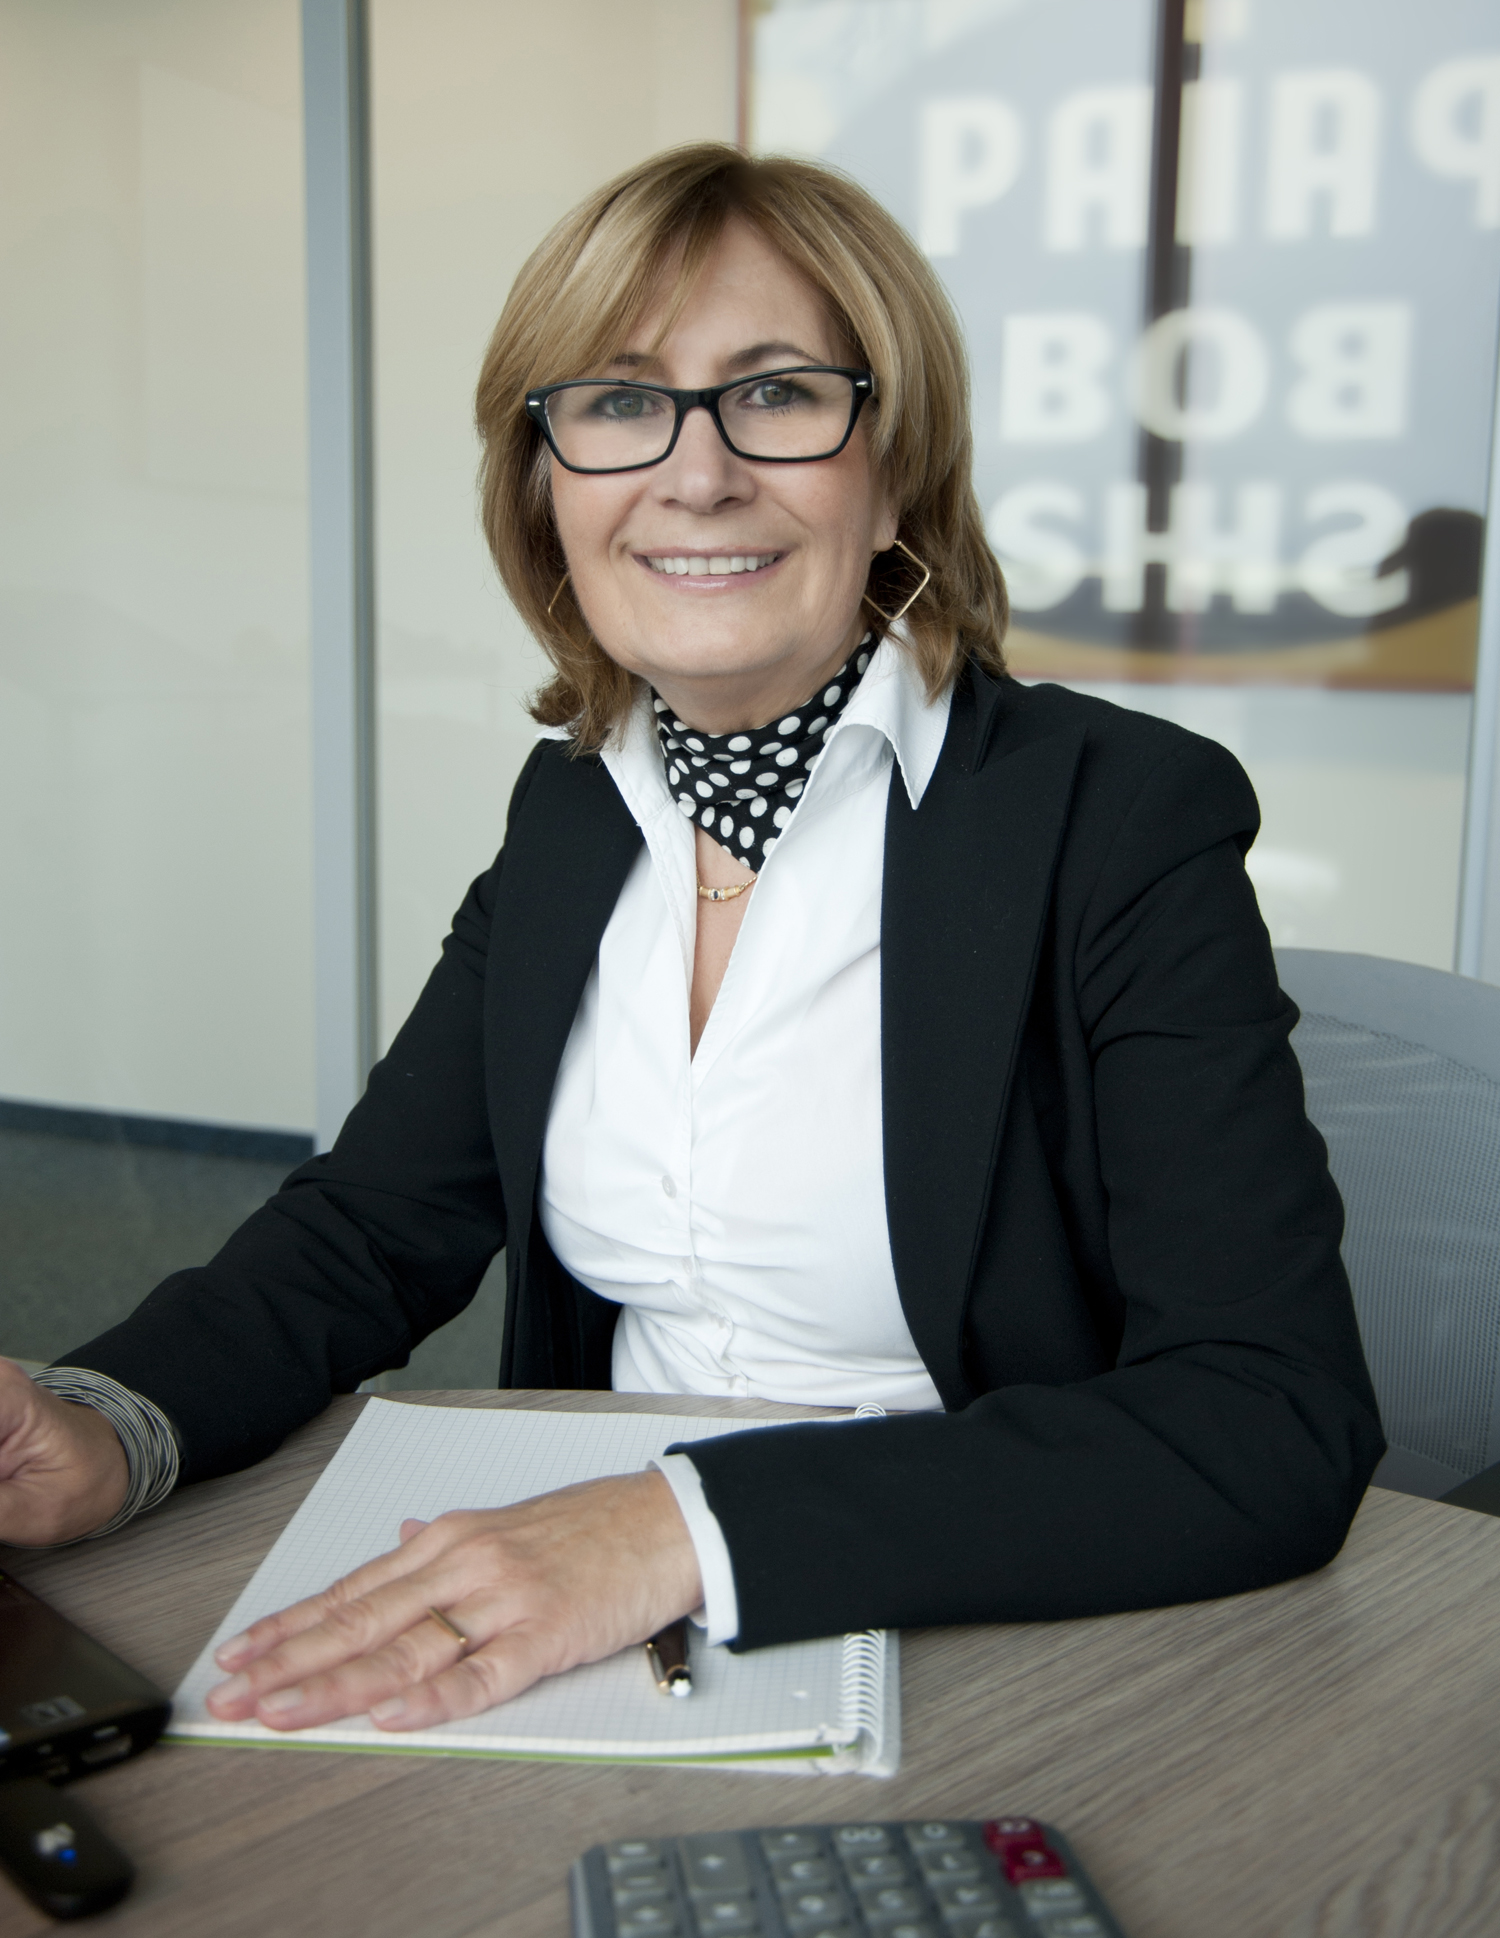 Barbara Wietasch, Global Management, Führung, Internationalität, Leadership, International Business